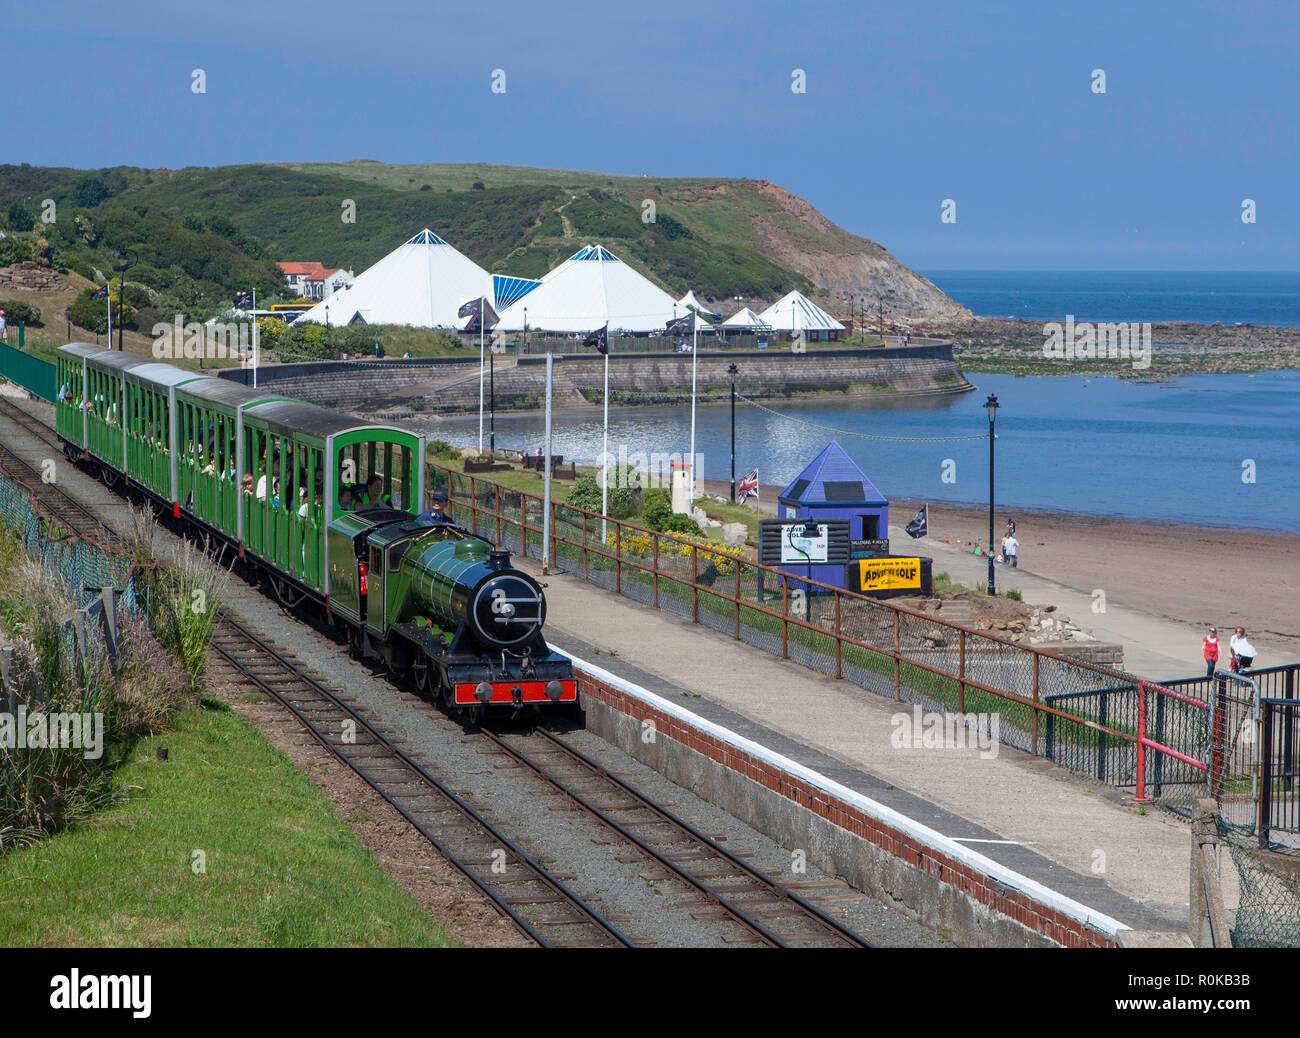 A miniature steam train pulls into a station on the North Bay Railway visitor attraction in Scarborough, North Yorkshire - Stock Image